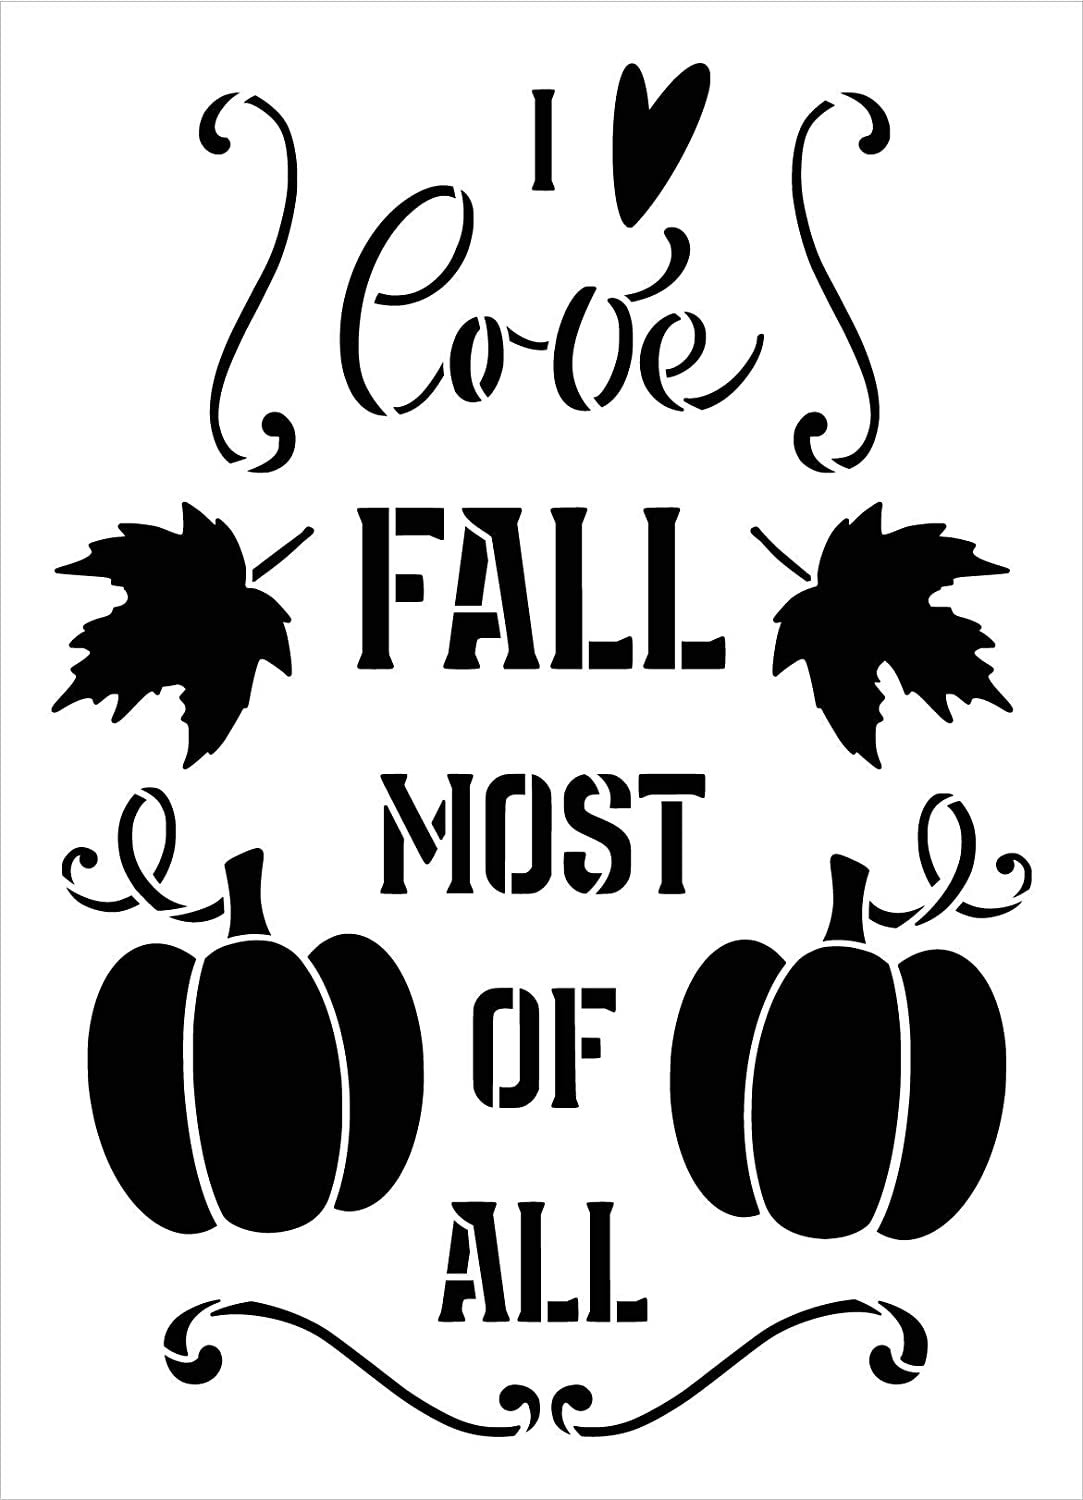 Love Fall Most of All Stencil by StudioR12 | DIY Autumn Leaves Pumpkin Home Decor Gift | Craft & Paint Wood Sign Reusable Mylar Template | Select Size